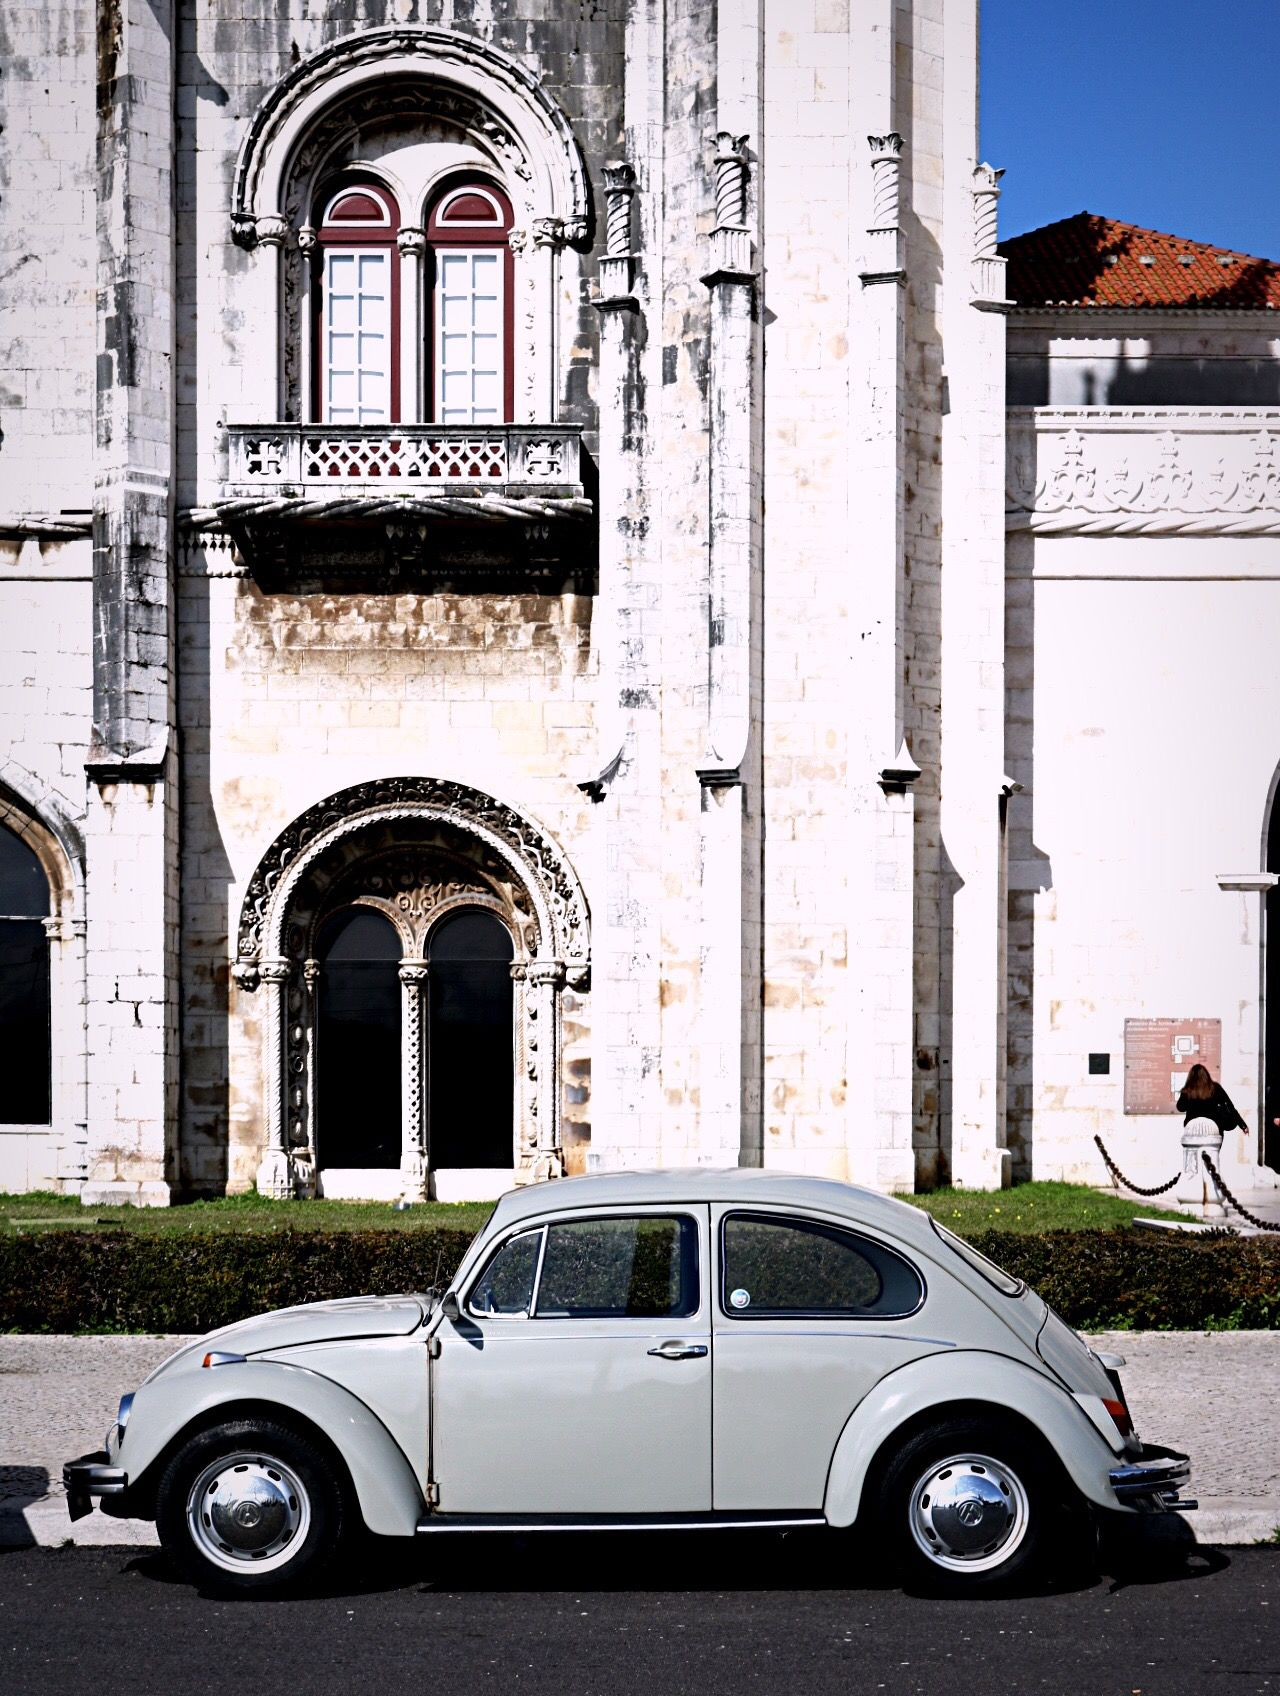 Arch Architecture Architecture Architecture_collection Beetle Built Structure Car Church Day EyeEm Best Shots History No People Outdoors Portugal Streetphotography Sunlight Taking Photos Vertical